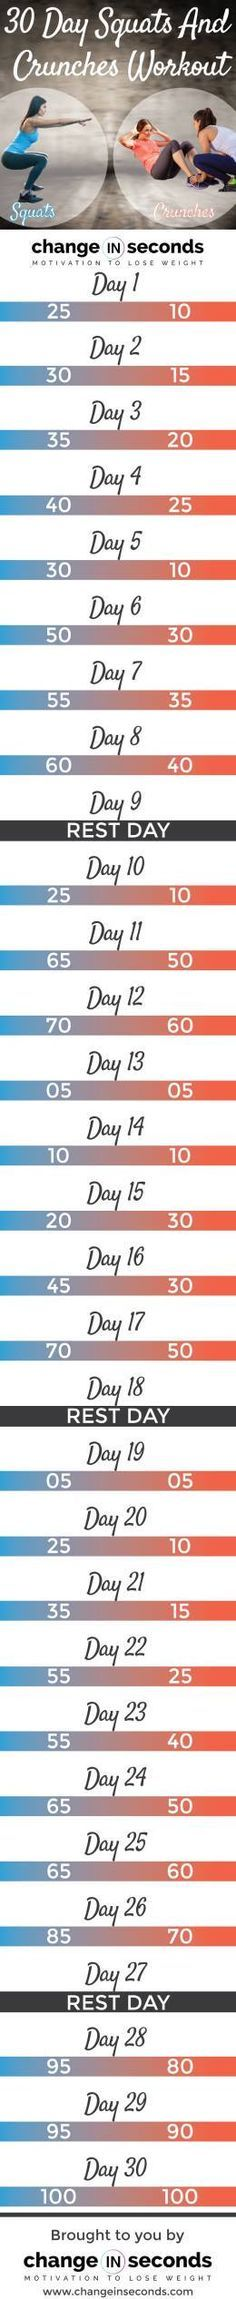 30 Day Squats And Crunches Workout http://www.changeinseconds.com/30-day-squats-and-crunches-workout/